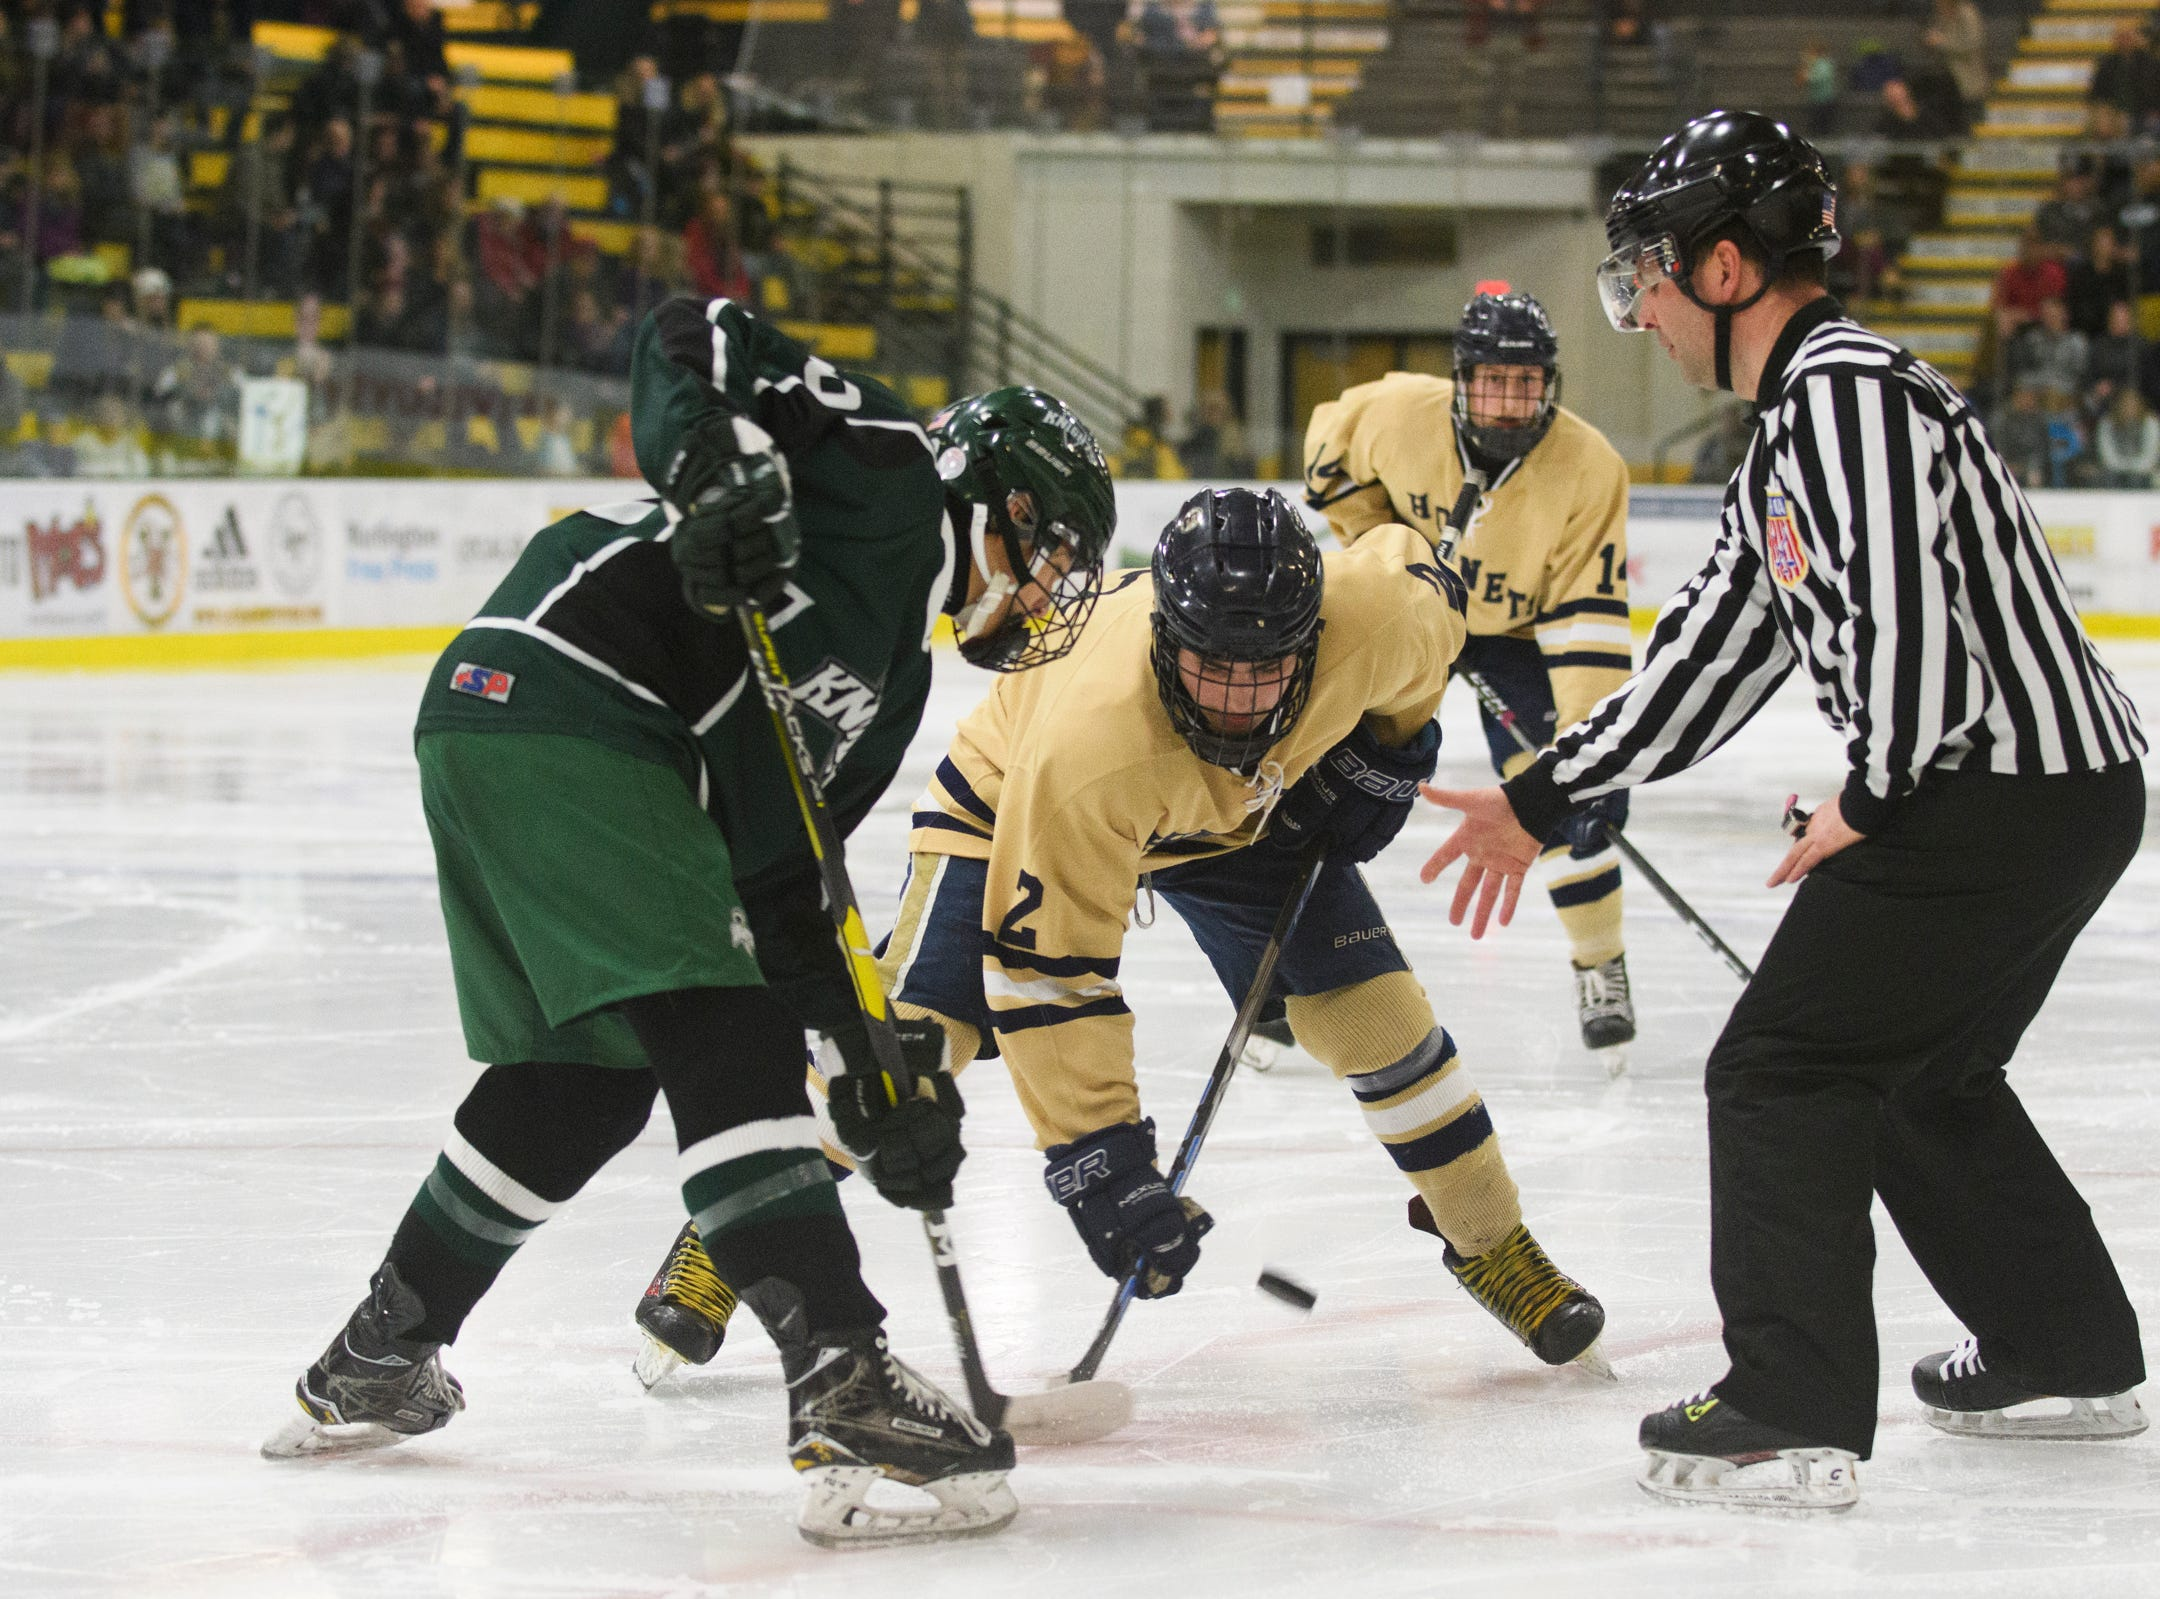 Essex and Rice face off during the DI boys hockey championship game between the Rice Green Knights and the Essex Hornets at Gutterson Field House on Wednesday night March 13, 2019 in Burlington, Vermont.